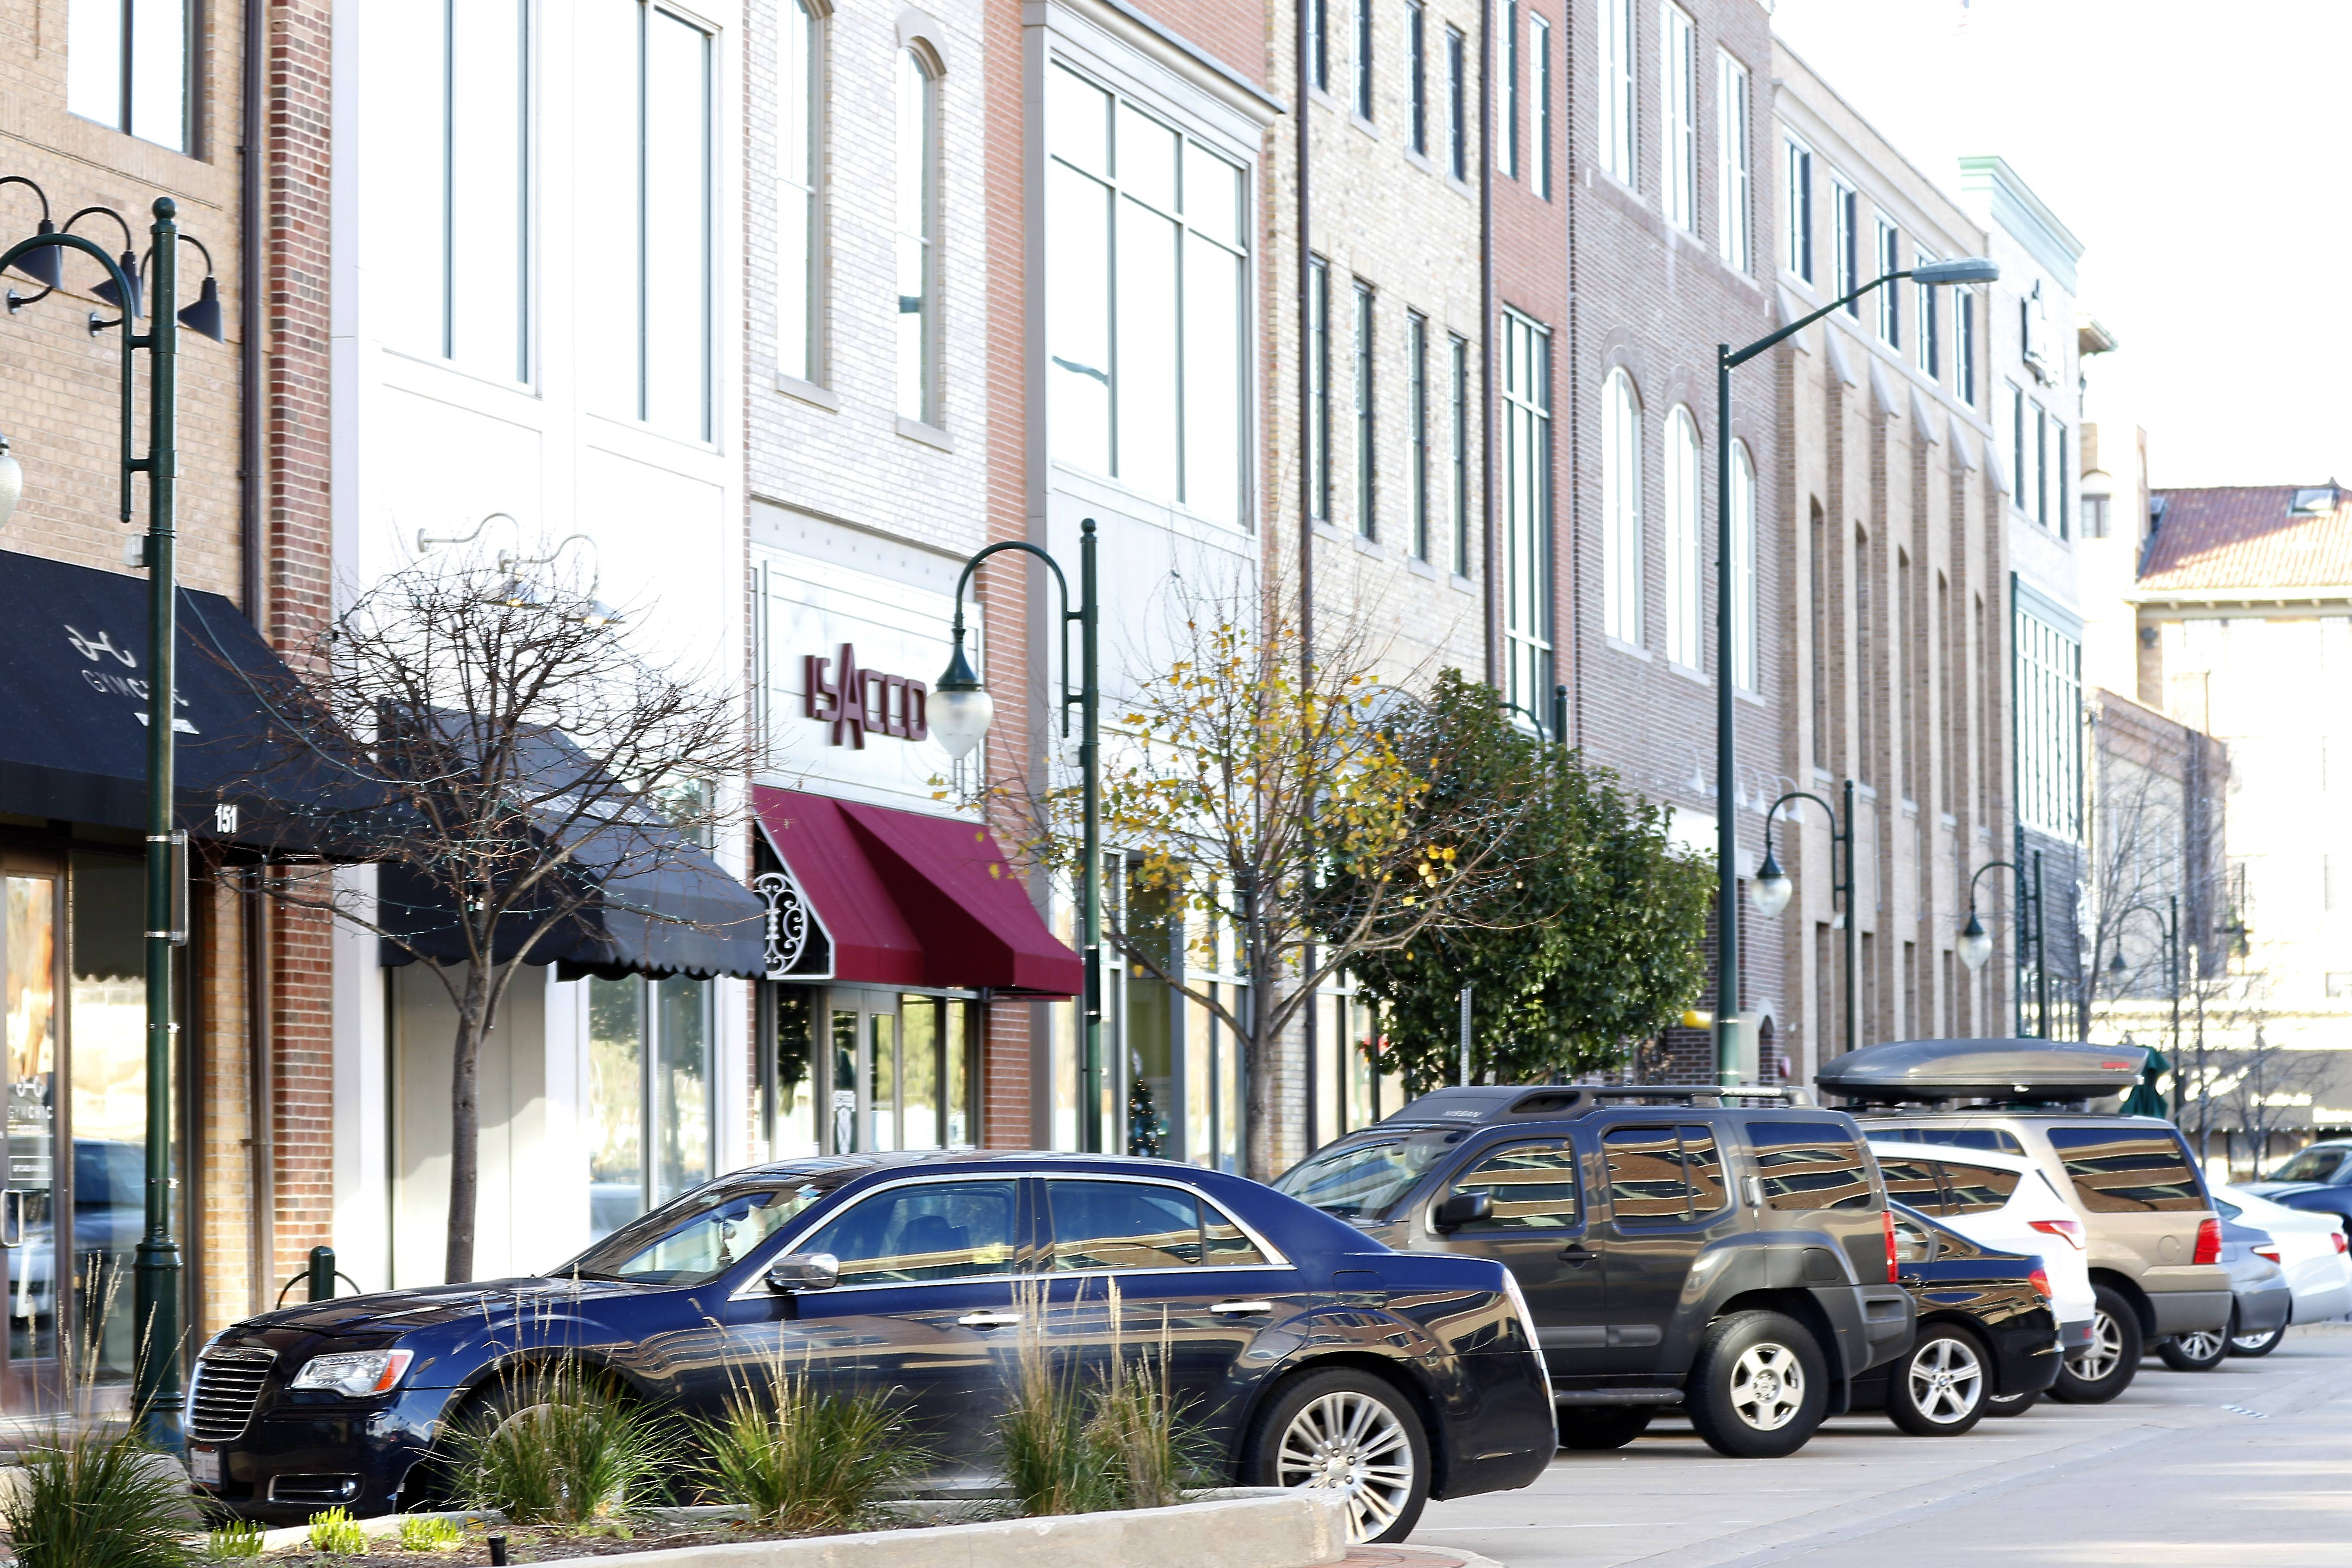 St. Charles is expected to begin soliciting proposals this spring for the final phase of its First Street redevelopment project.